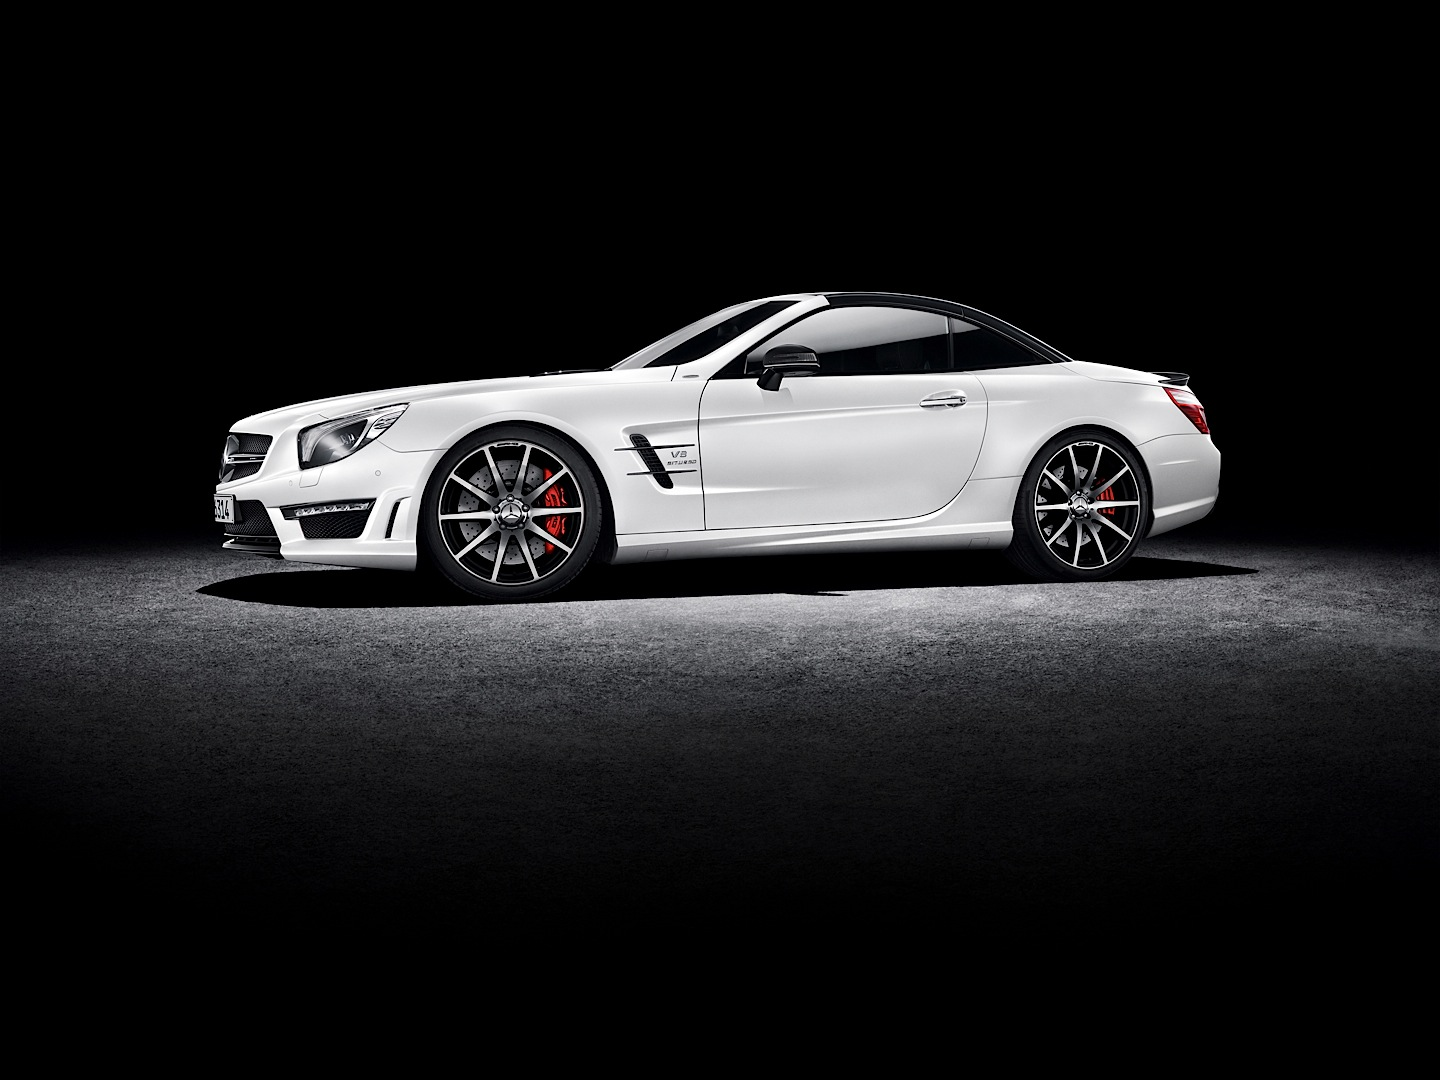 Mercedes benz launches special edition sl and slk for Mercedes benz slk 55 amg special edition